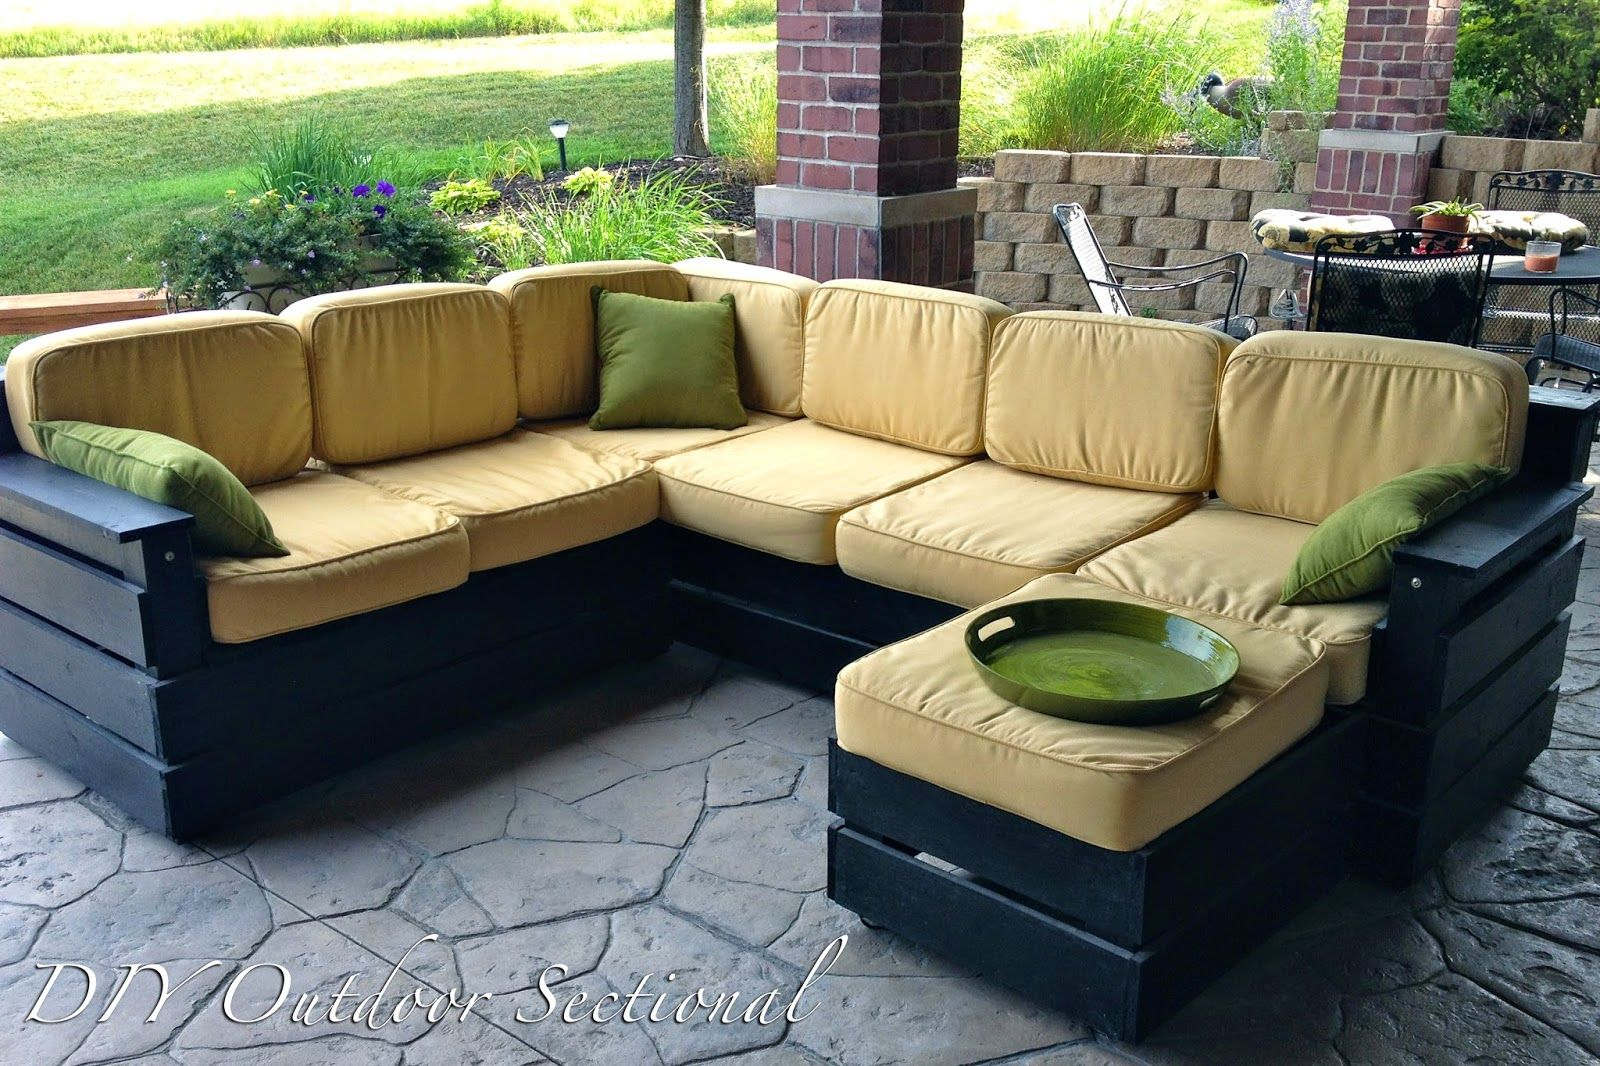 Diy why spend more diy outdoor sectional pallet